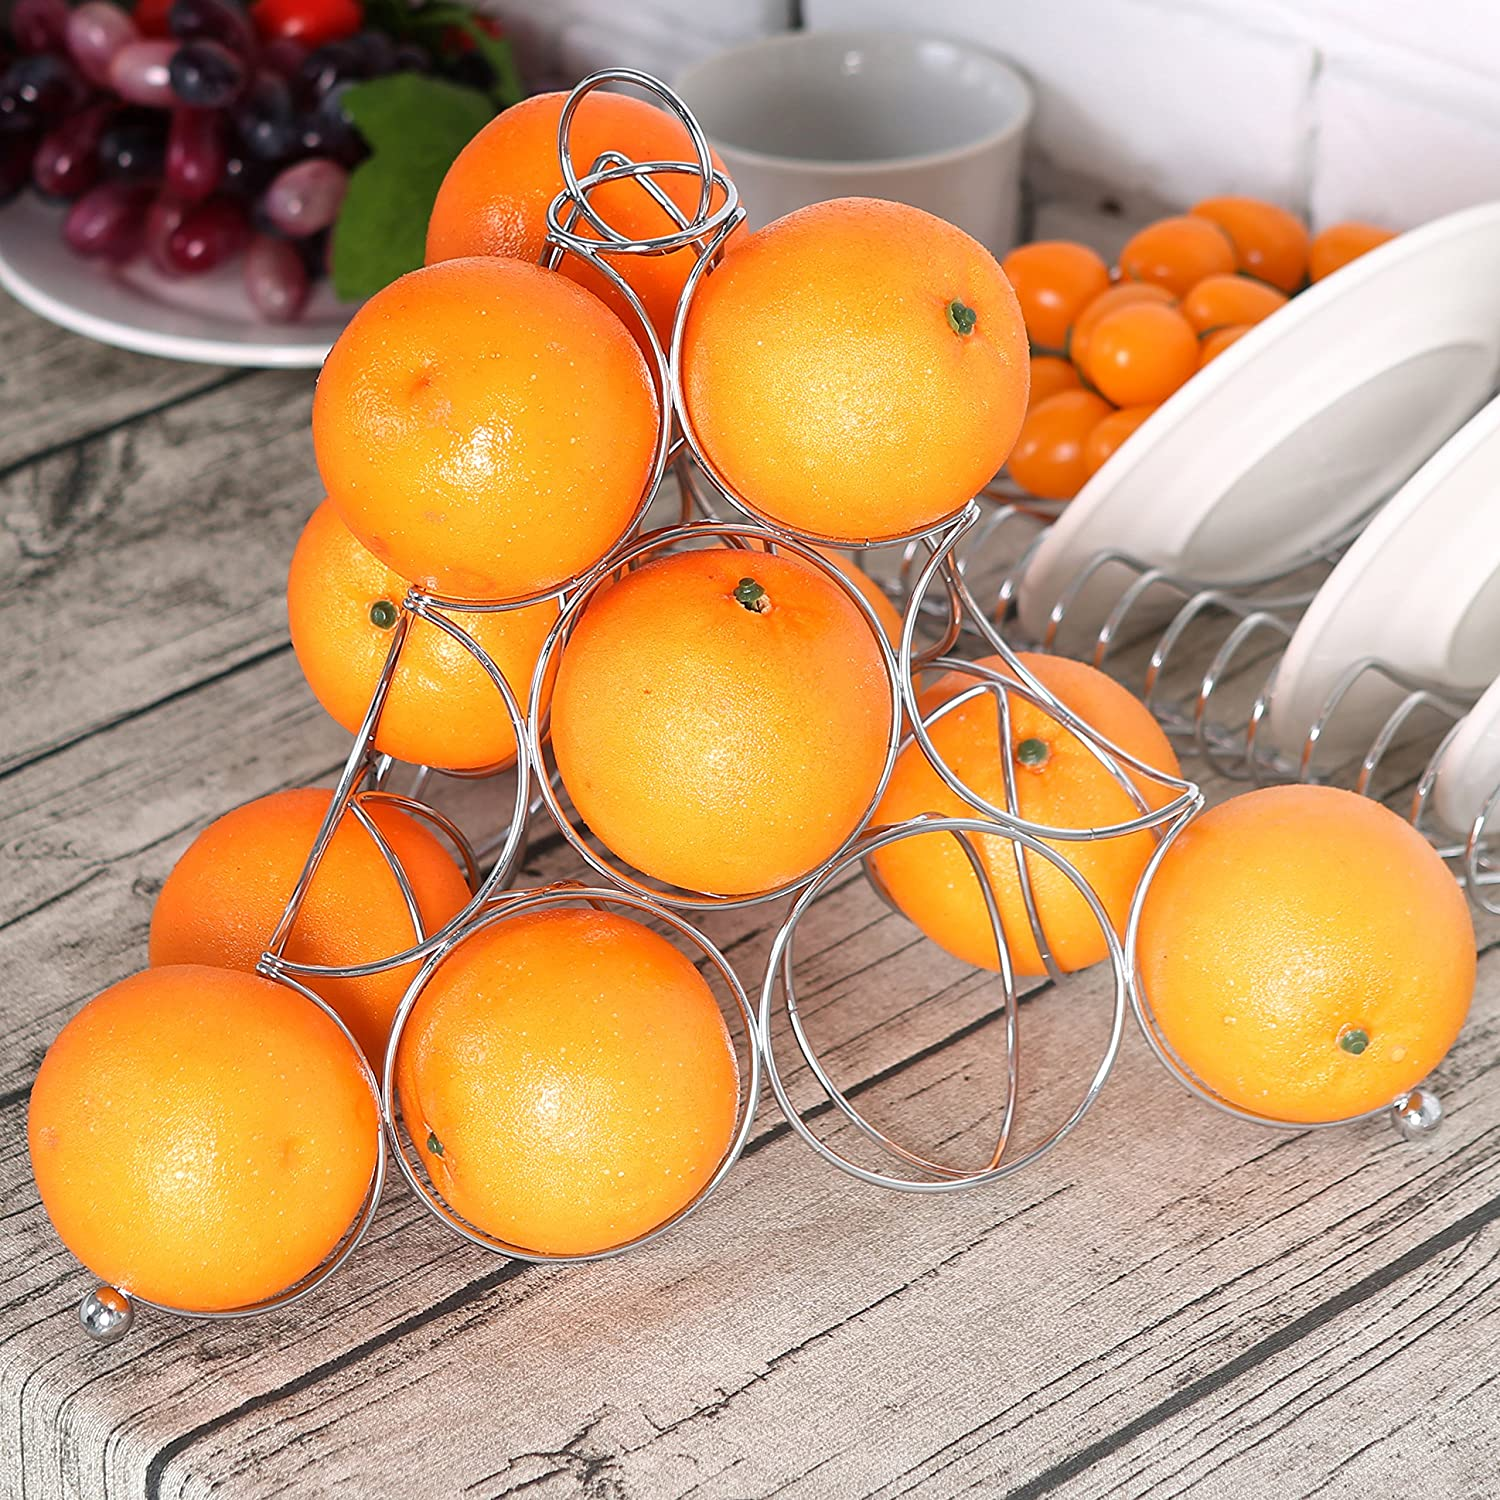 Modern Chrome Pyramid Countertop Fruit Rack, Wire Frame Display Holder, Silver MyGift